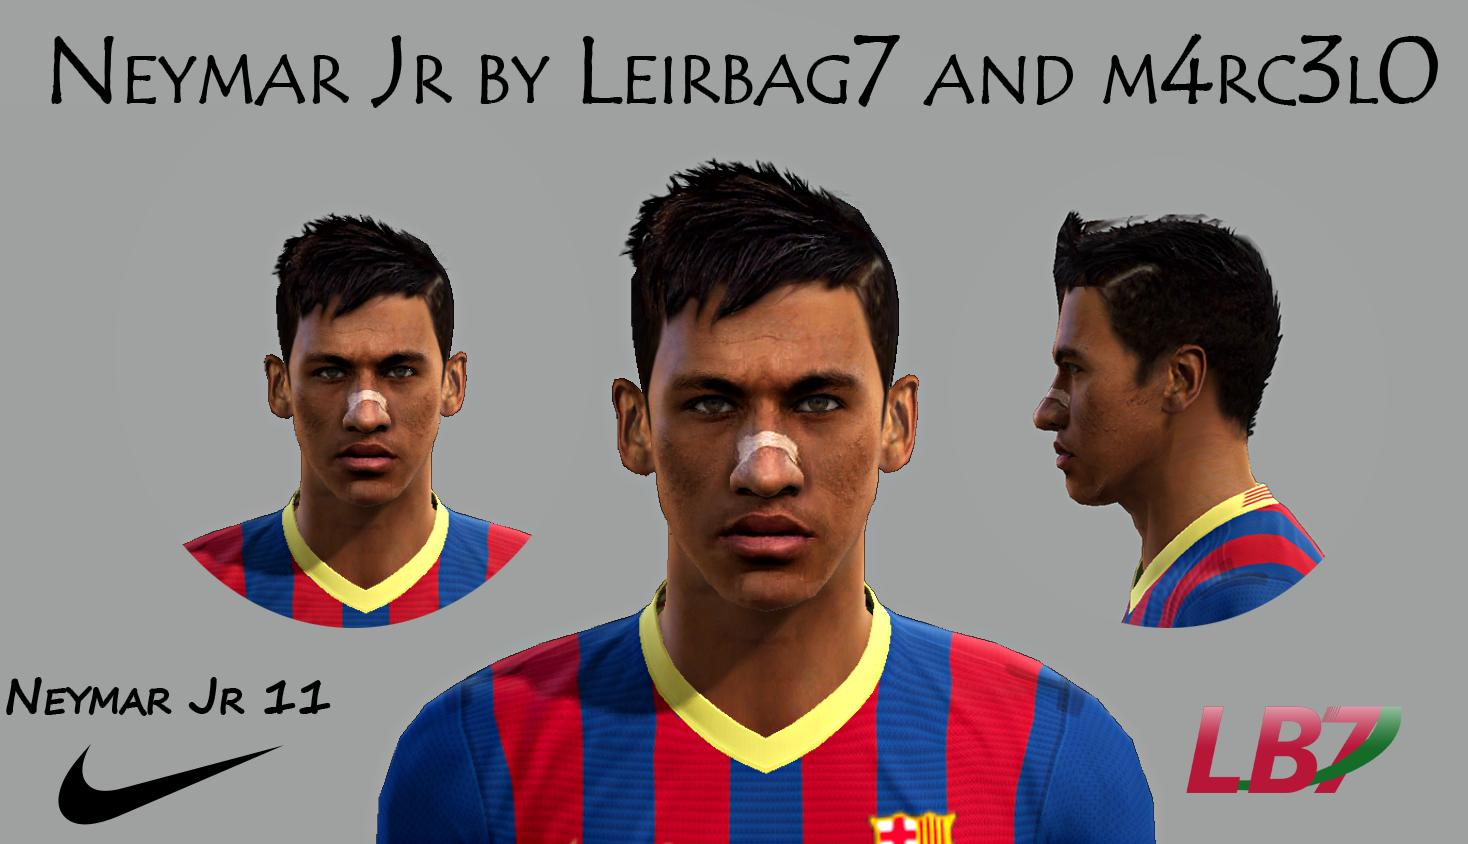 Face Neymar Jr by Leirbag7 and m4rc3l0